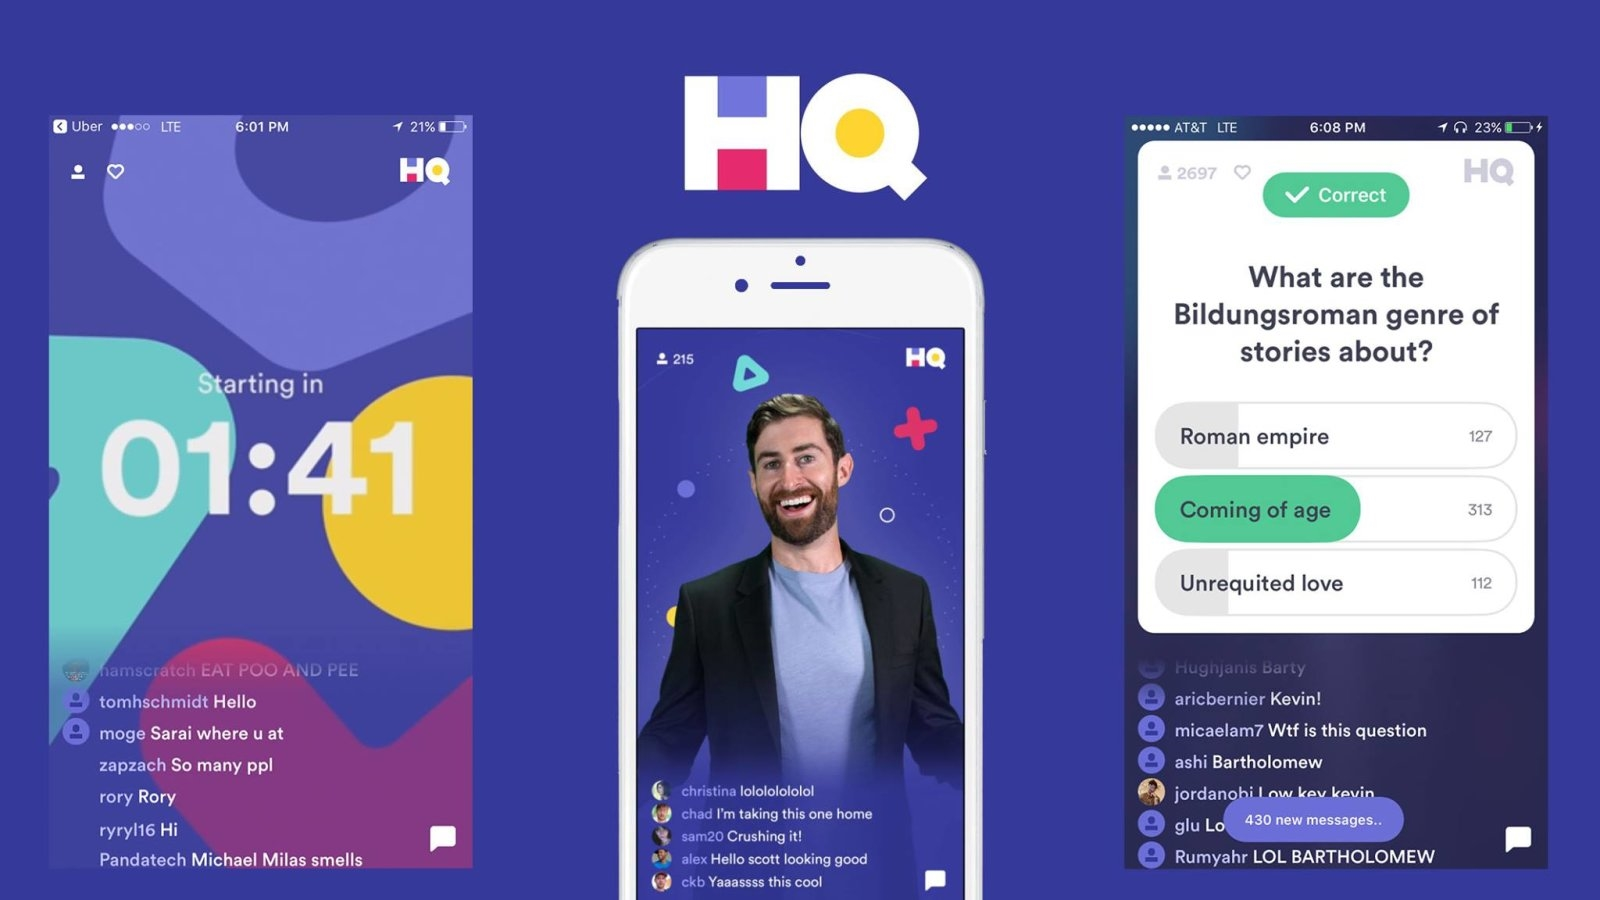 HQ Trivia game abruptly shuts down after 14 'seasons' | DeviceDaily.com